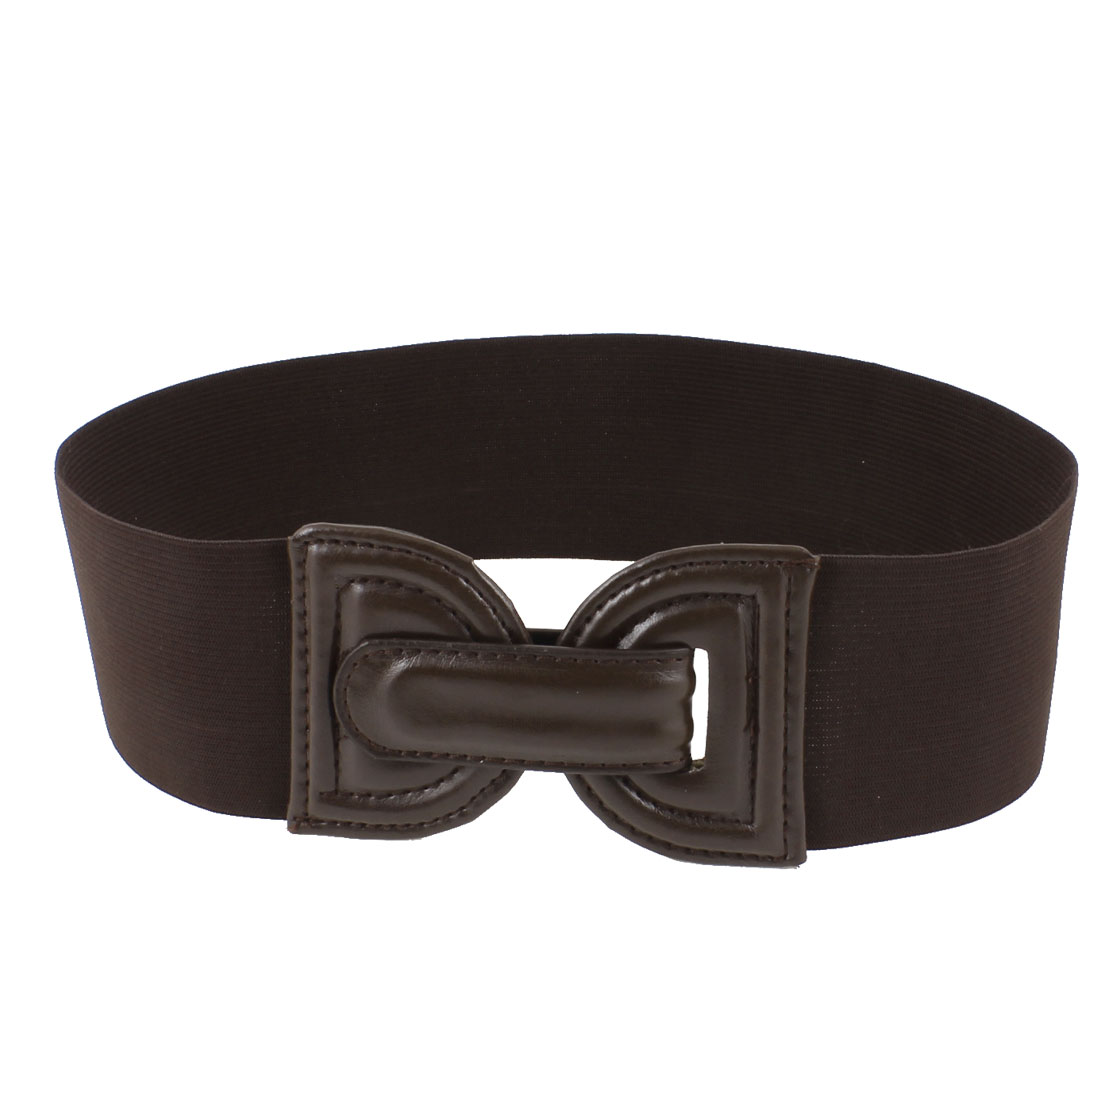 Lady Faux Leather Front 7cm Wide Stretchy Waistband Cinch Belt Coffee Color